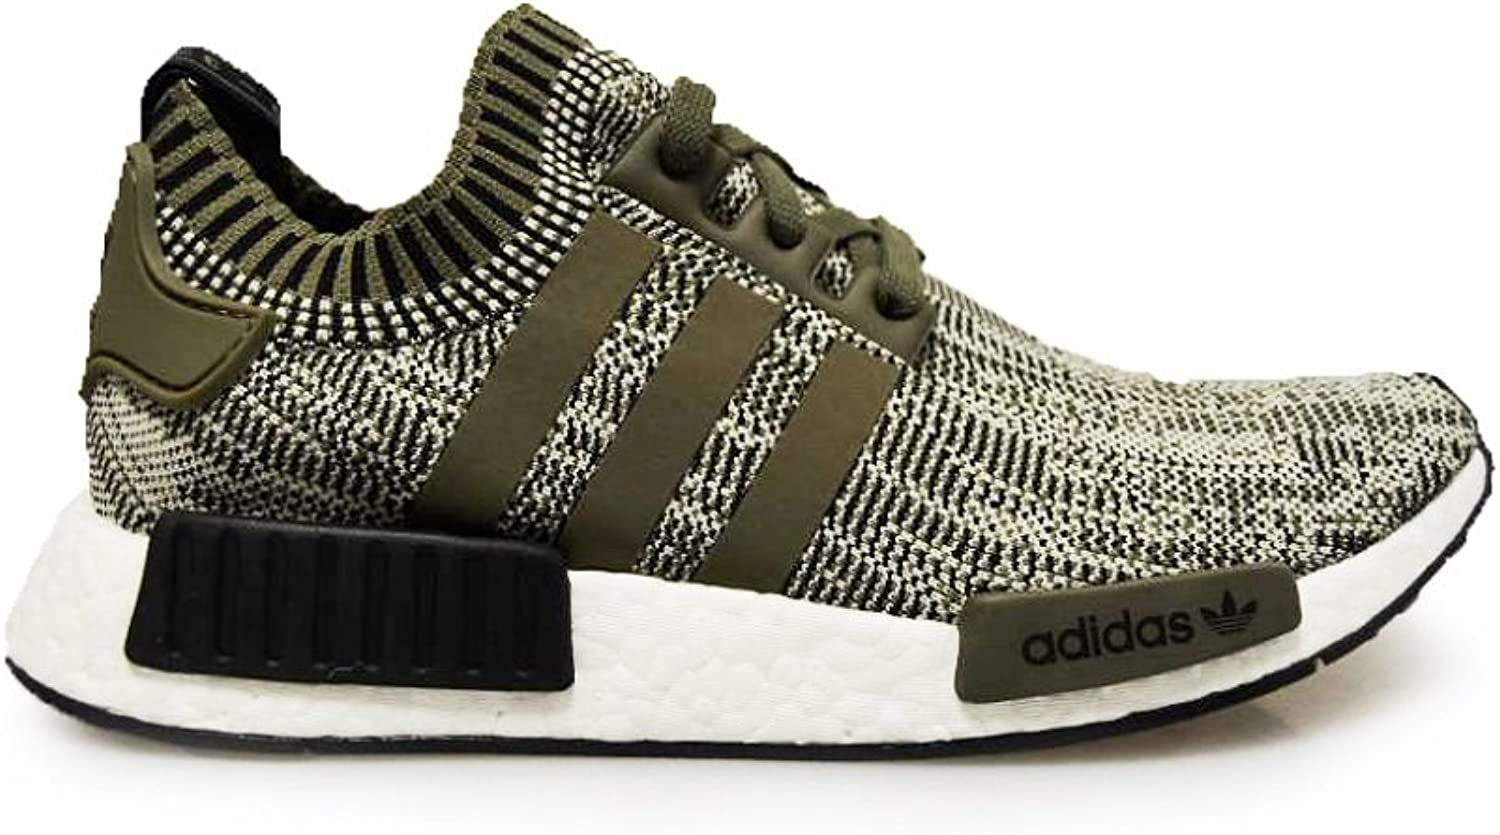 Adidas Mens NMD_R1 Primeknit Sesame Branch-UK 8.5  EUR 42 2 3  US 9